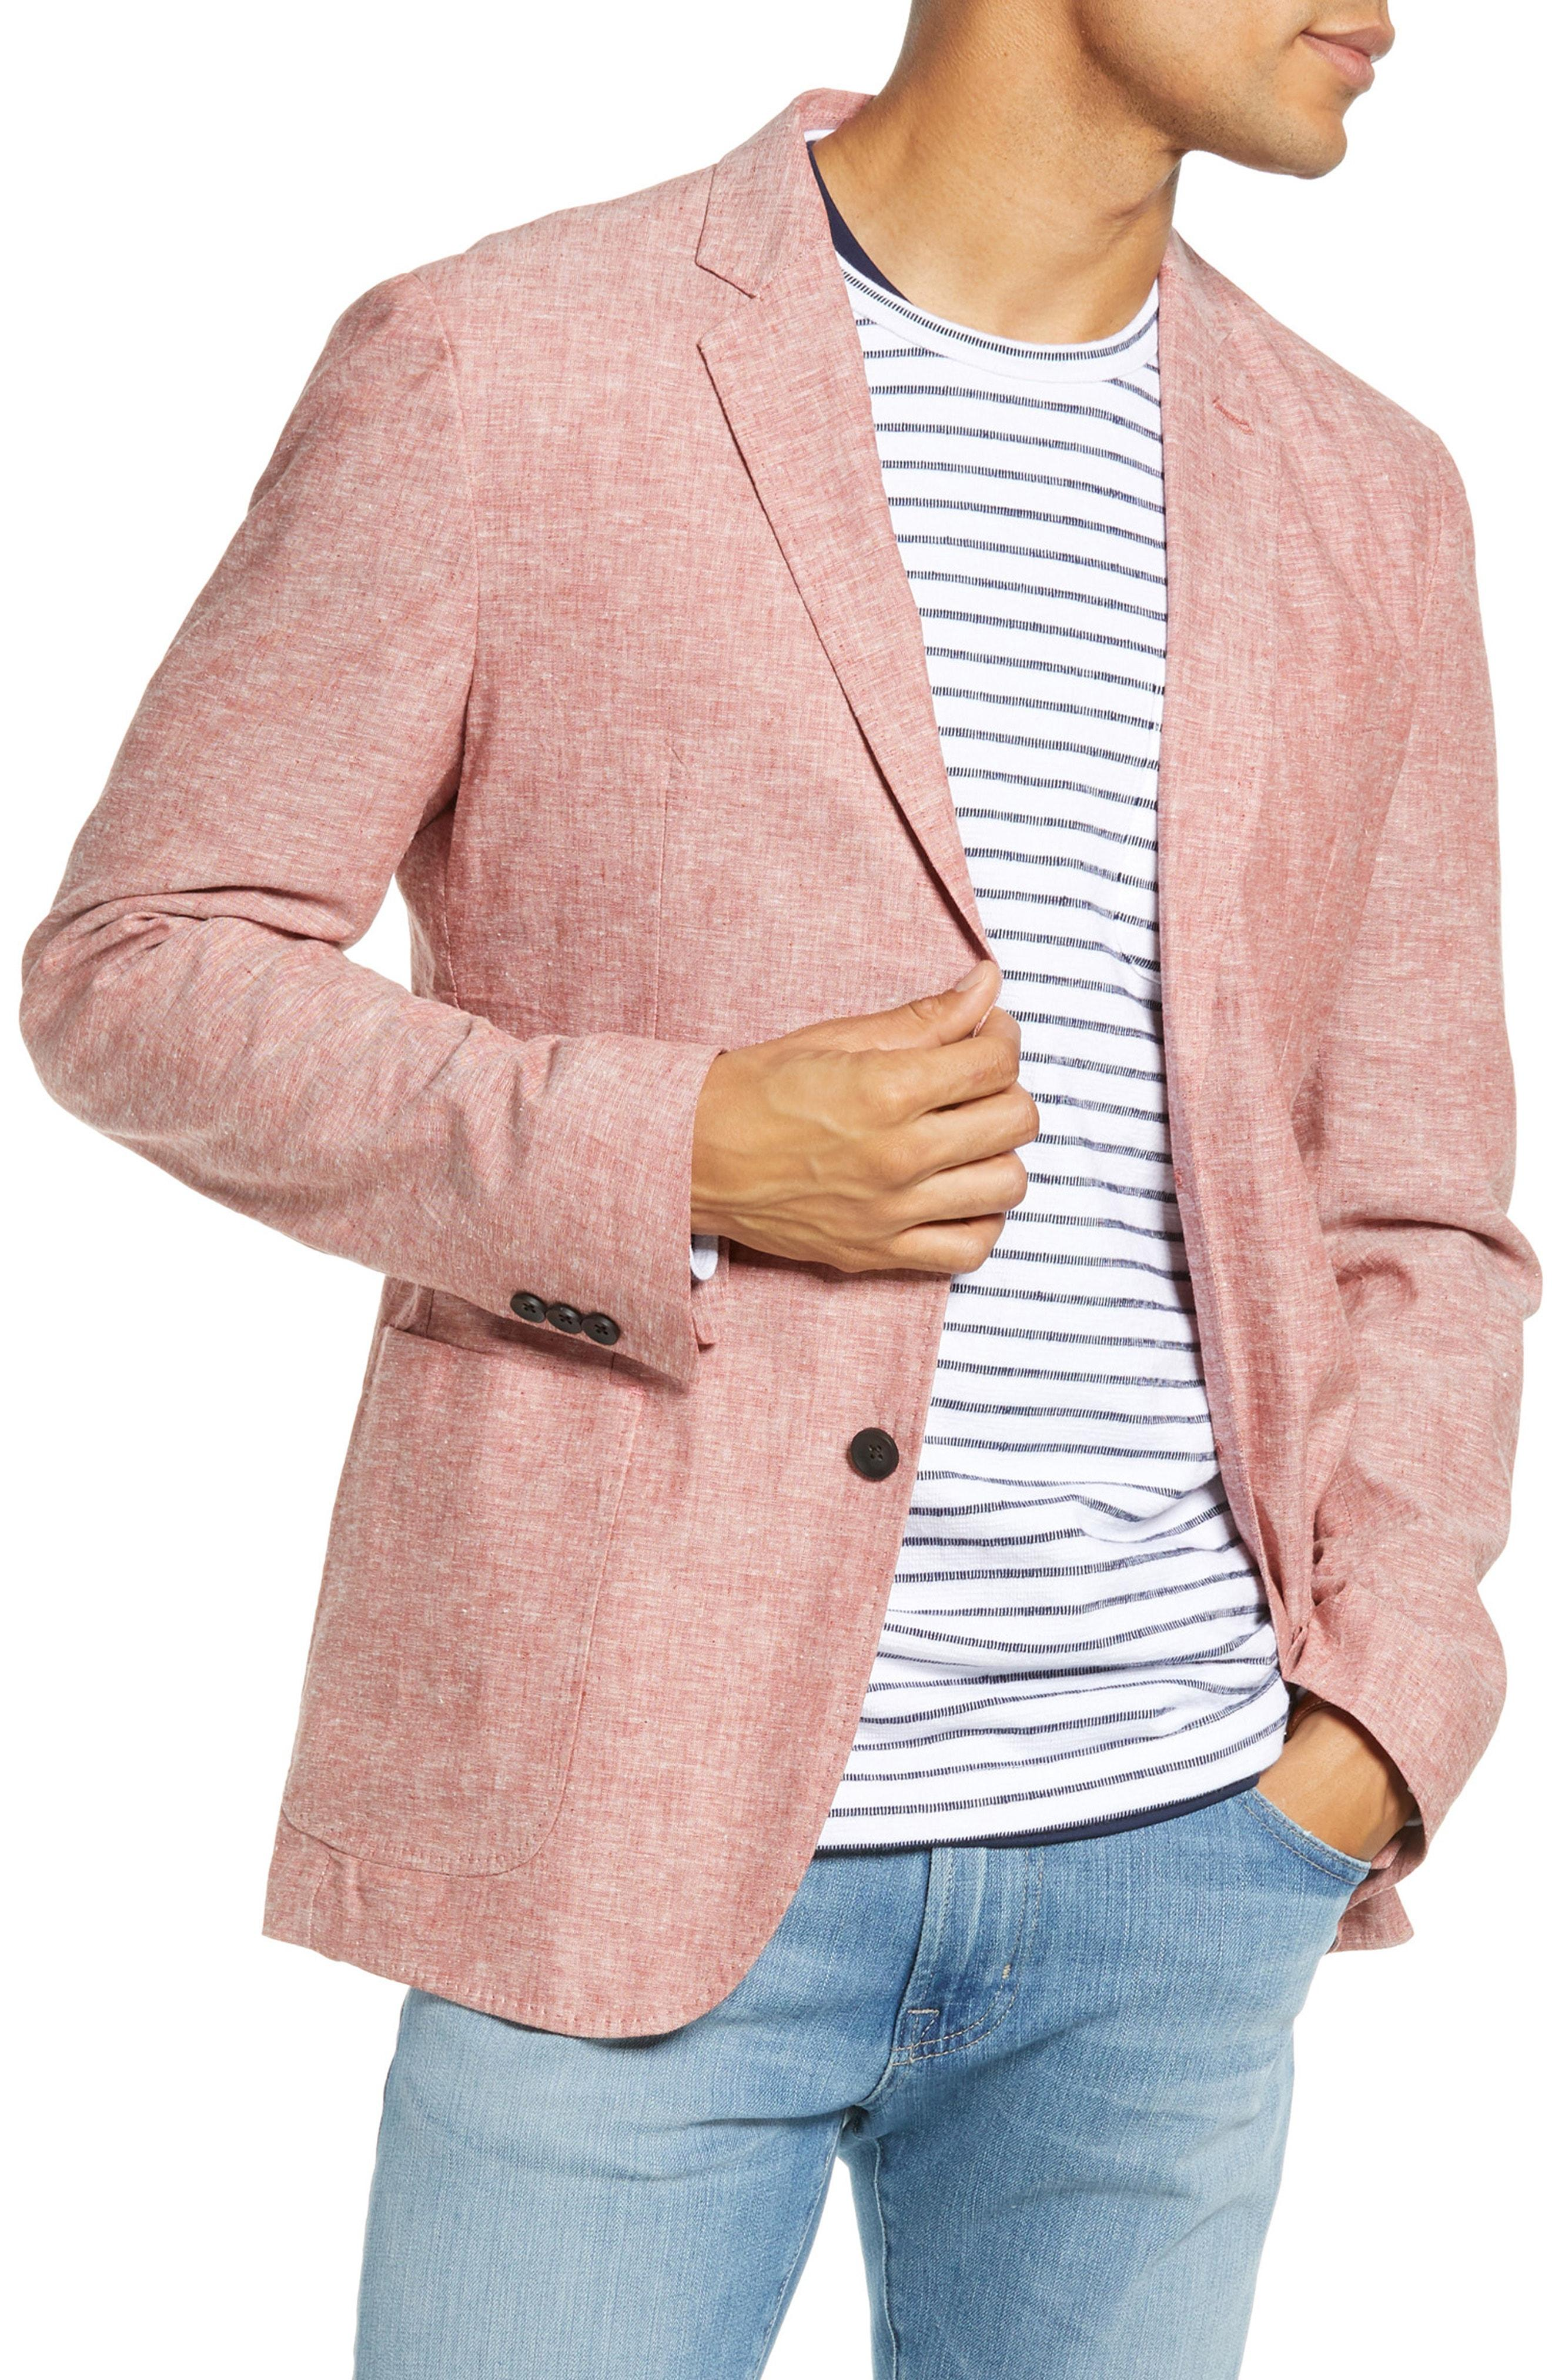 18d3e800ef5 Lyst - Nordstrom 1901 Extra Trim Fit Chambray Sport Coat in Pink for Men